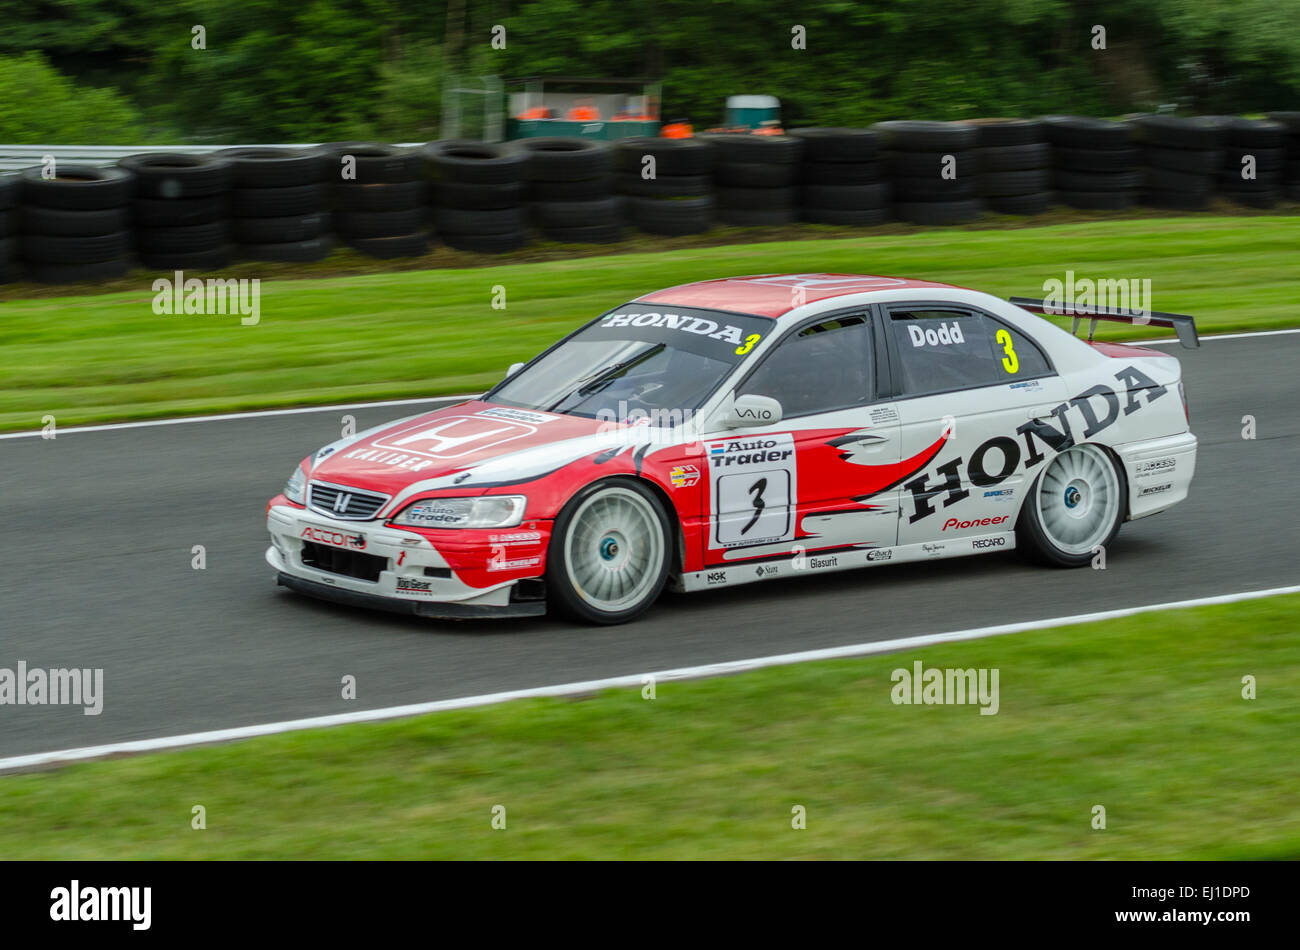 Dodd drives a classic Honda competes in a Classic Touring cars race at Oulton Park race circuit - Stock Image